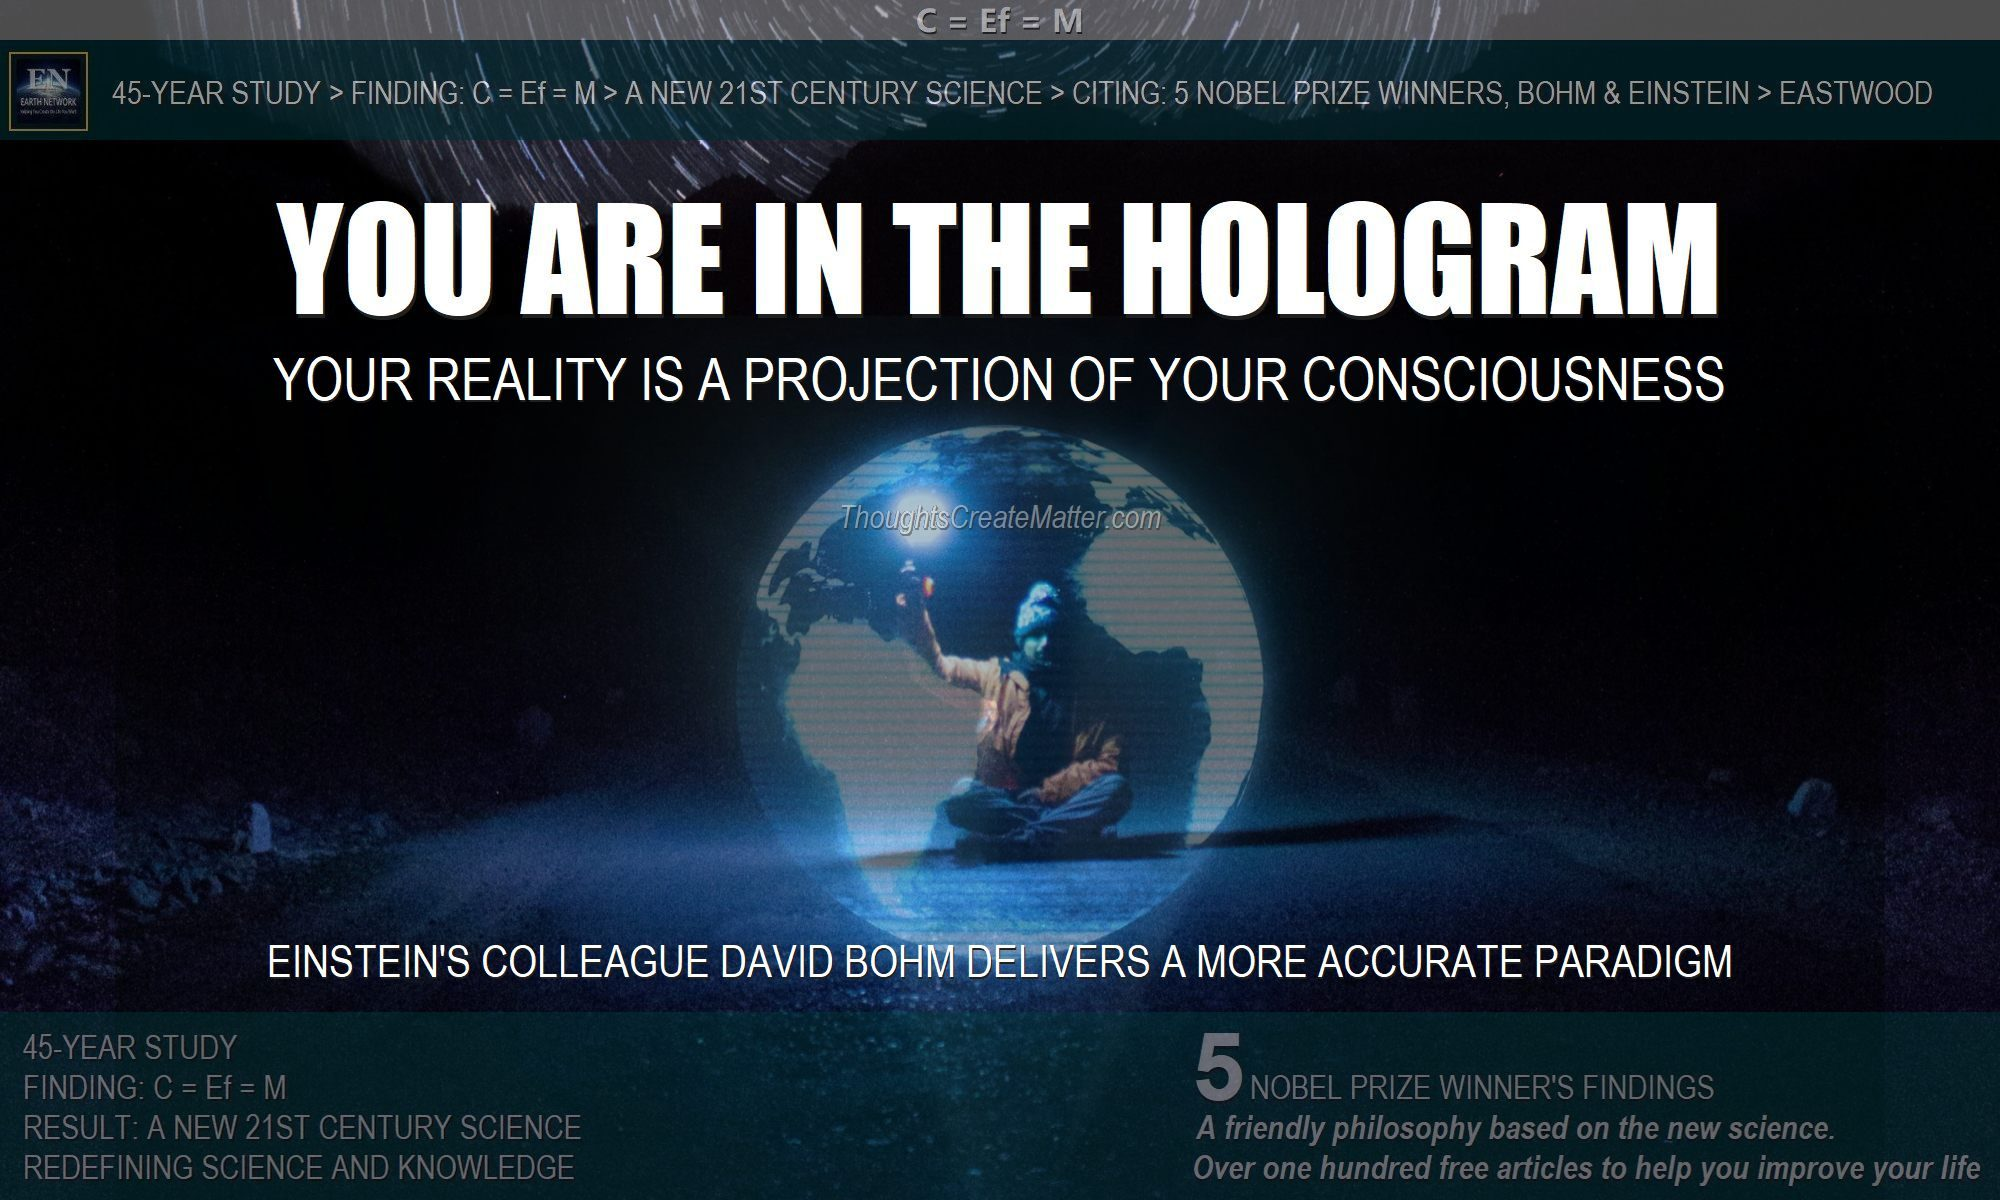 Man in hologram depicts the scientific paradigm of Einstein's colleague David Bohm. Your consciousness and thoughts create and project your reality